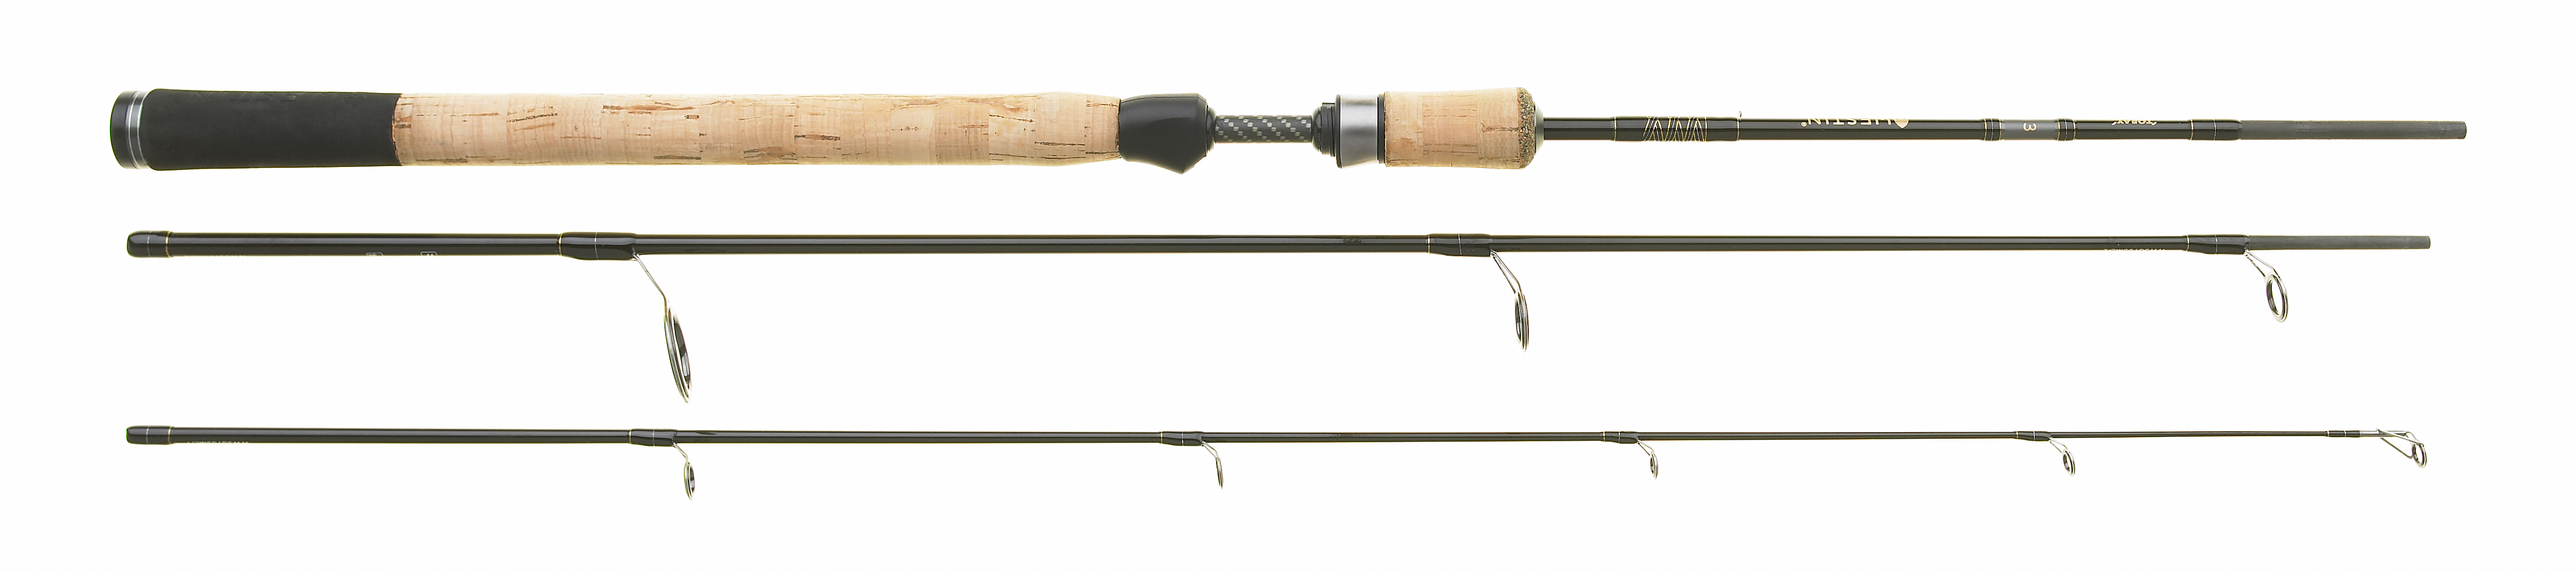 Westin w3 spinning rods glasgow angling centre for Spinning fishing rods